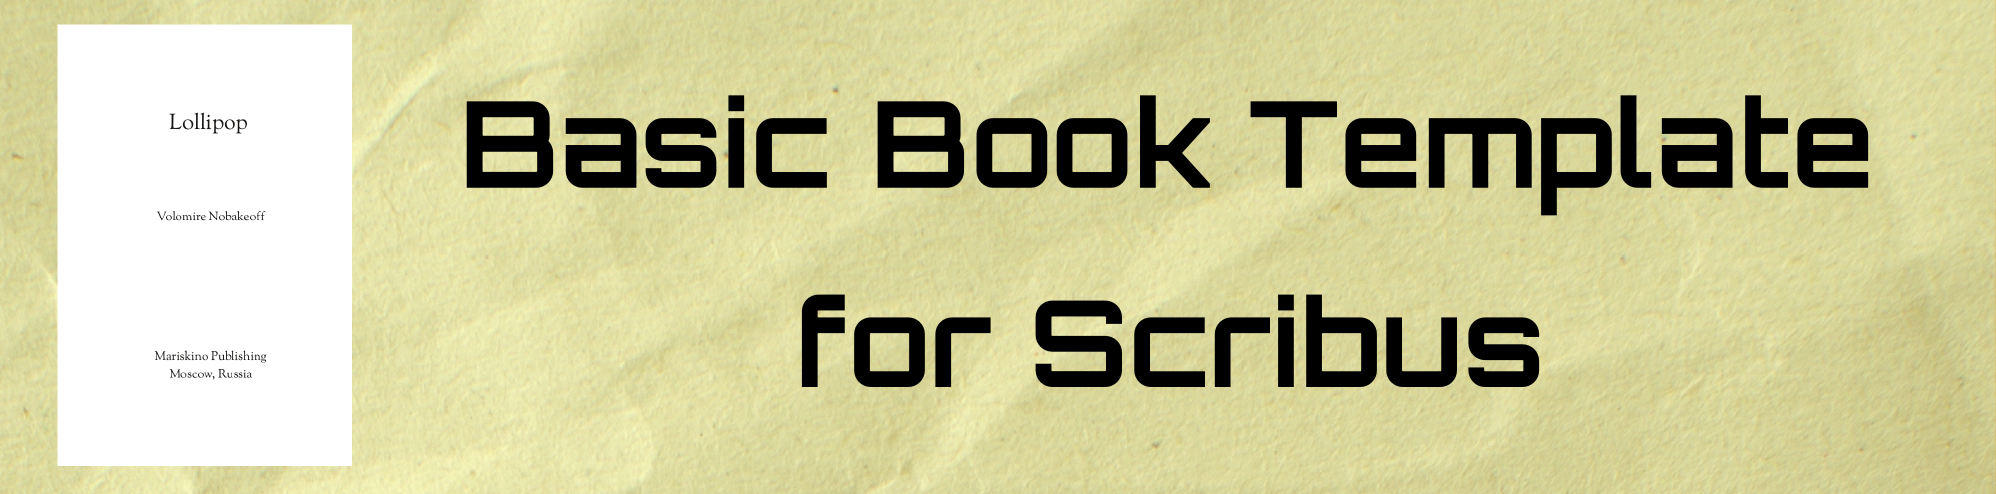 basic book template for scribus john osterhout